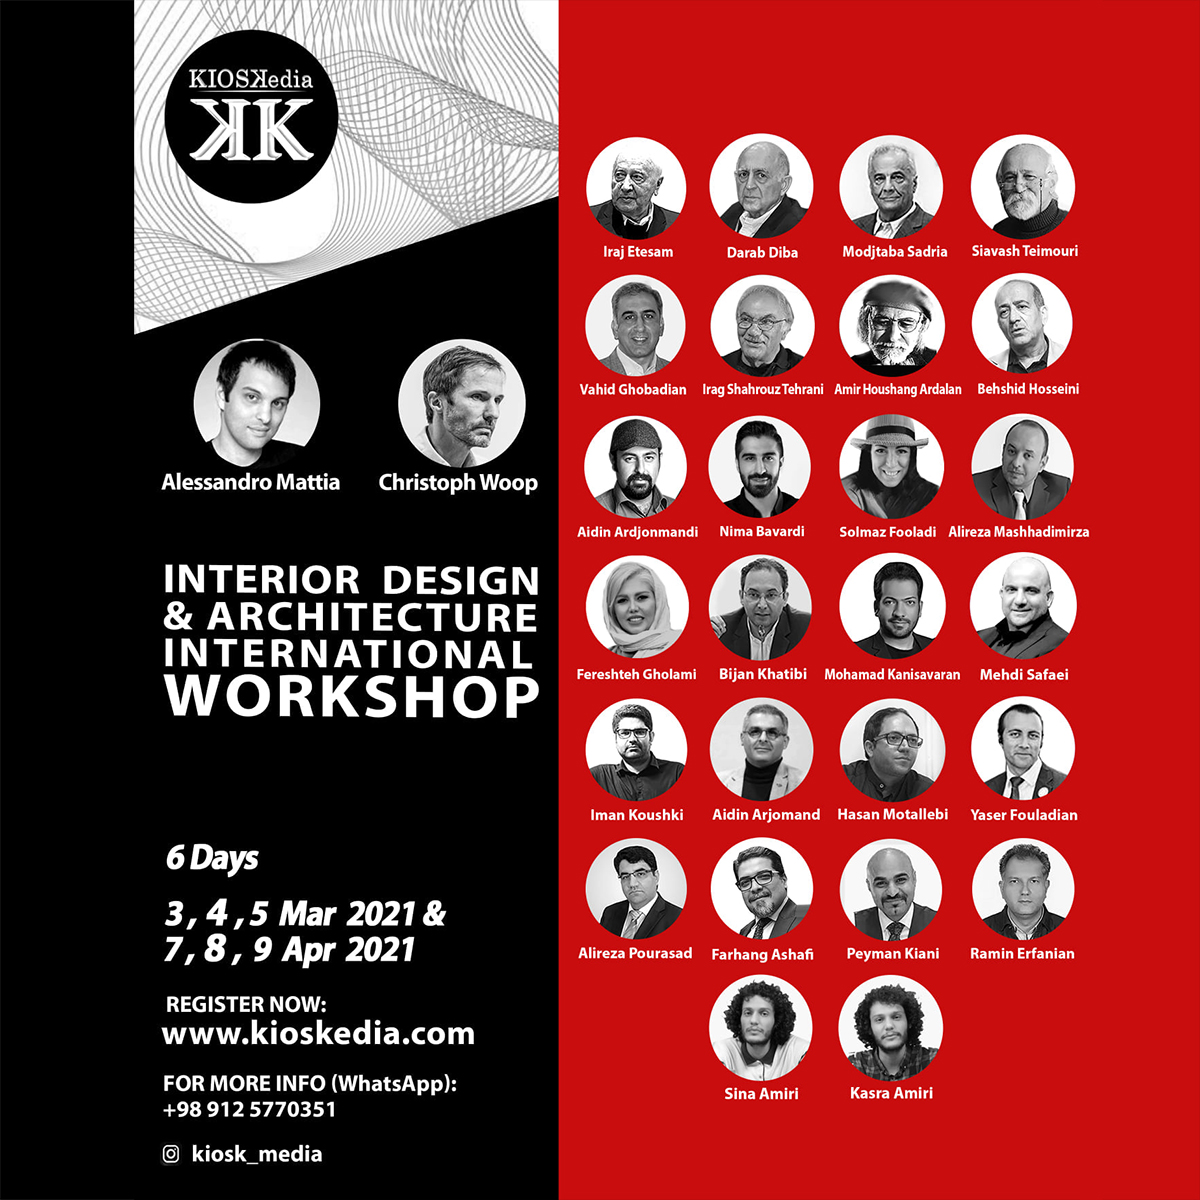 KIOSKedia Interior Design & Architecture International Workshop